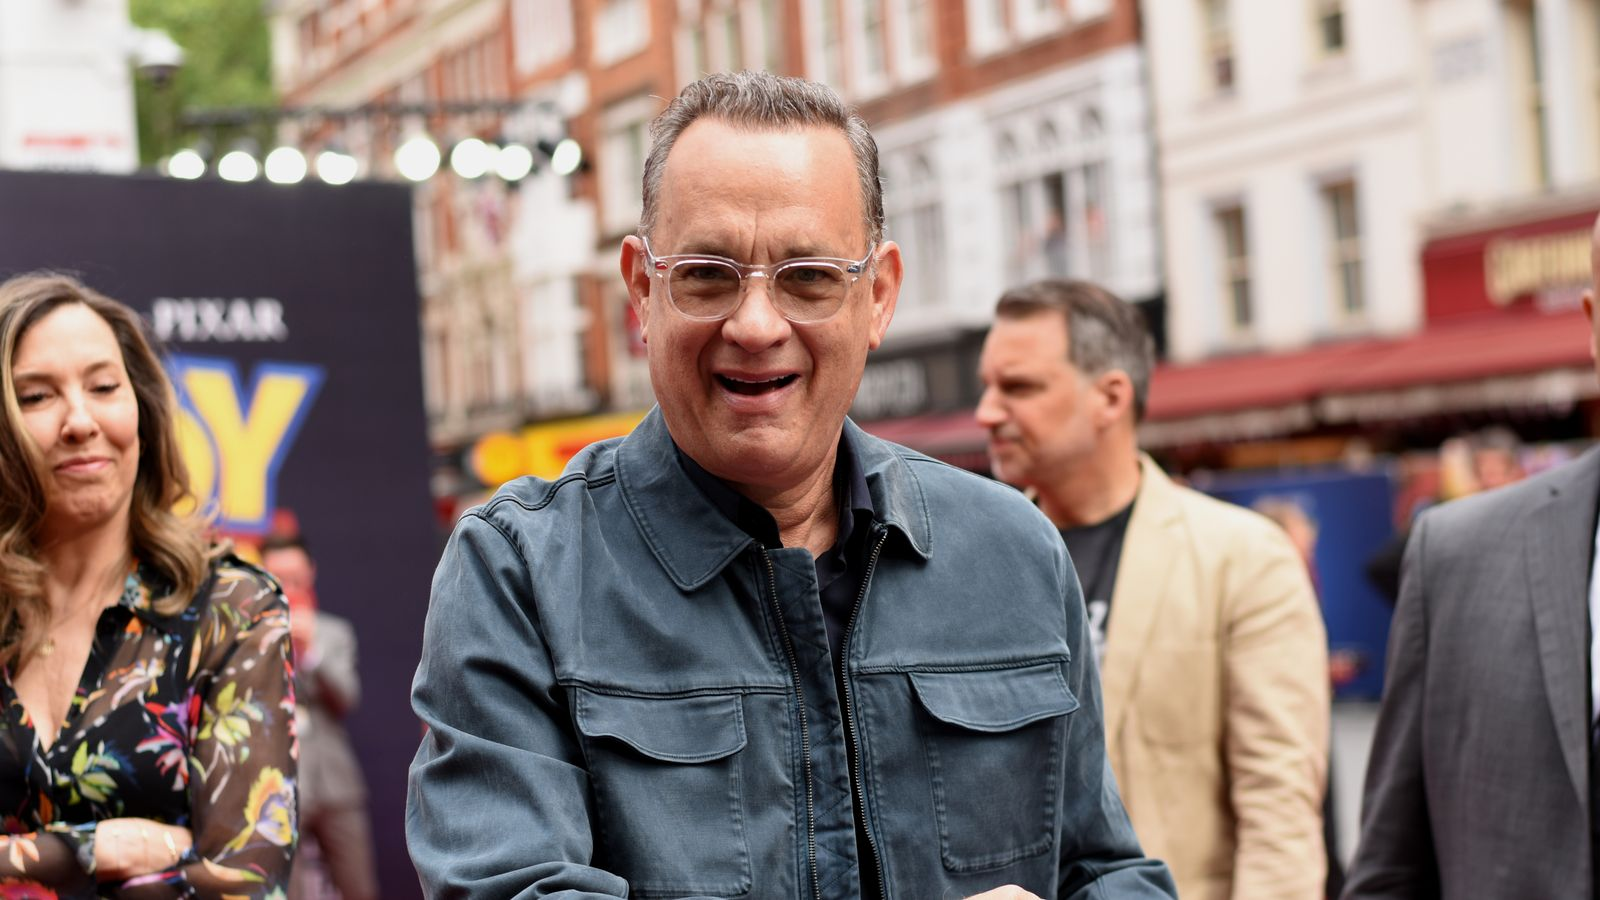 Coronavirus: Tom Hanks says he doesn't have 'much respect' for those who won't wear masks | Ents & Arts News